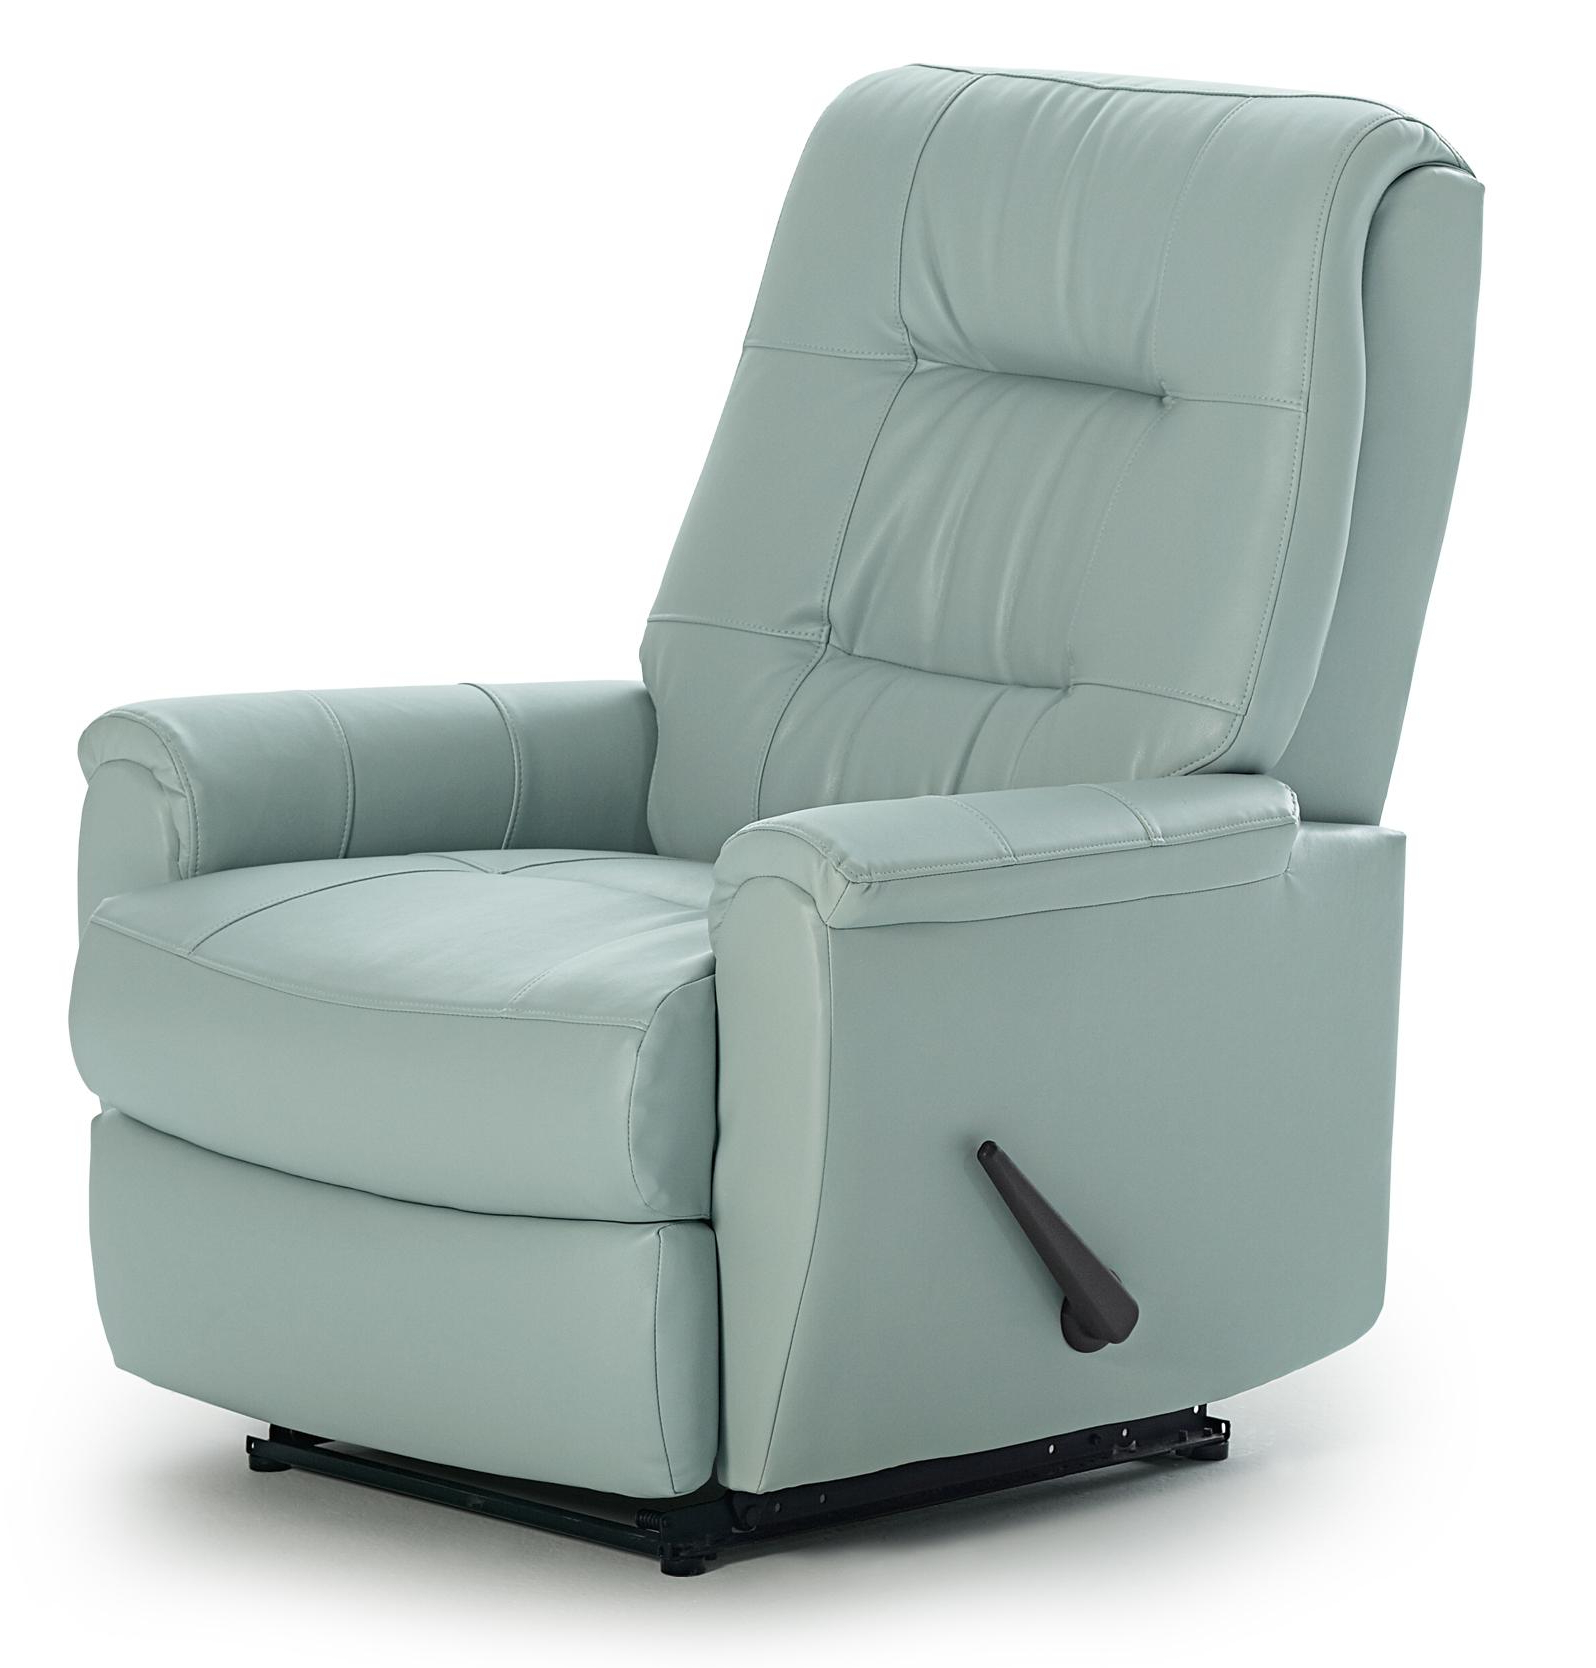 Intended For Most Popular Decker Ii Fabric Swivel Rocker Recliners (View 4 of 20)